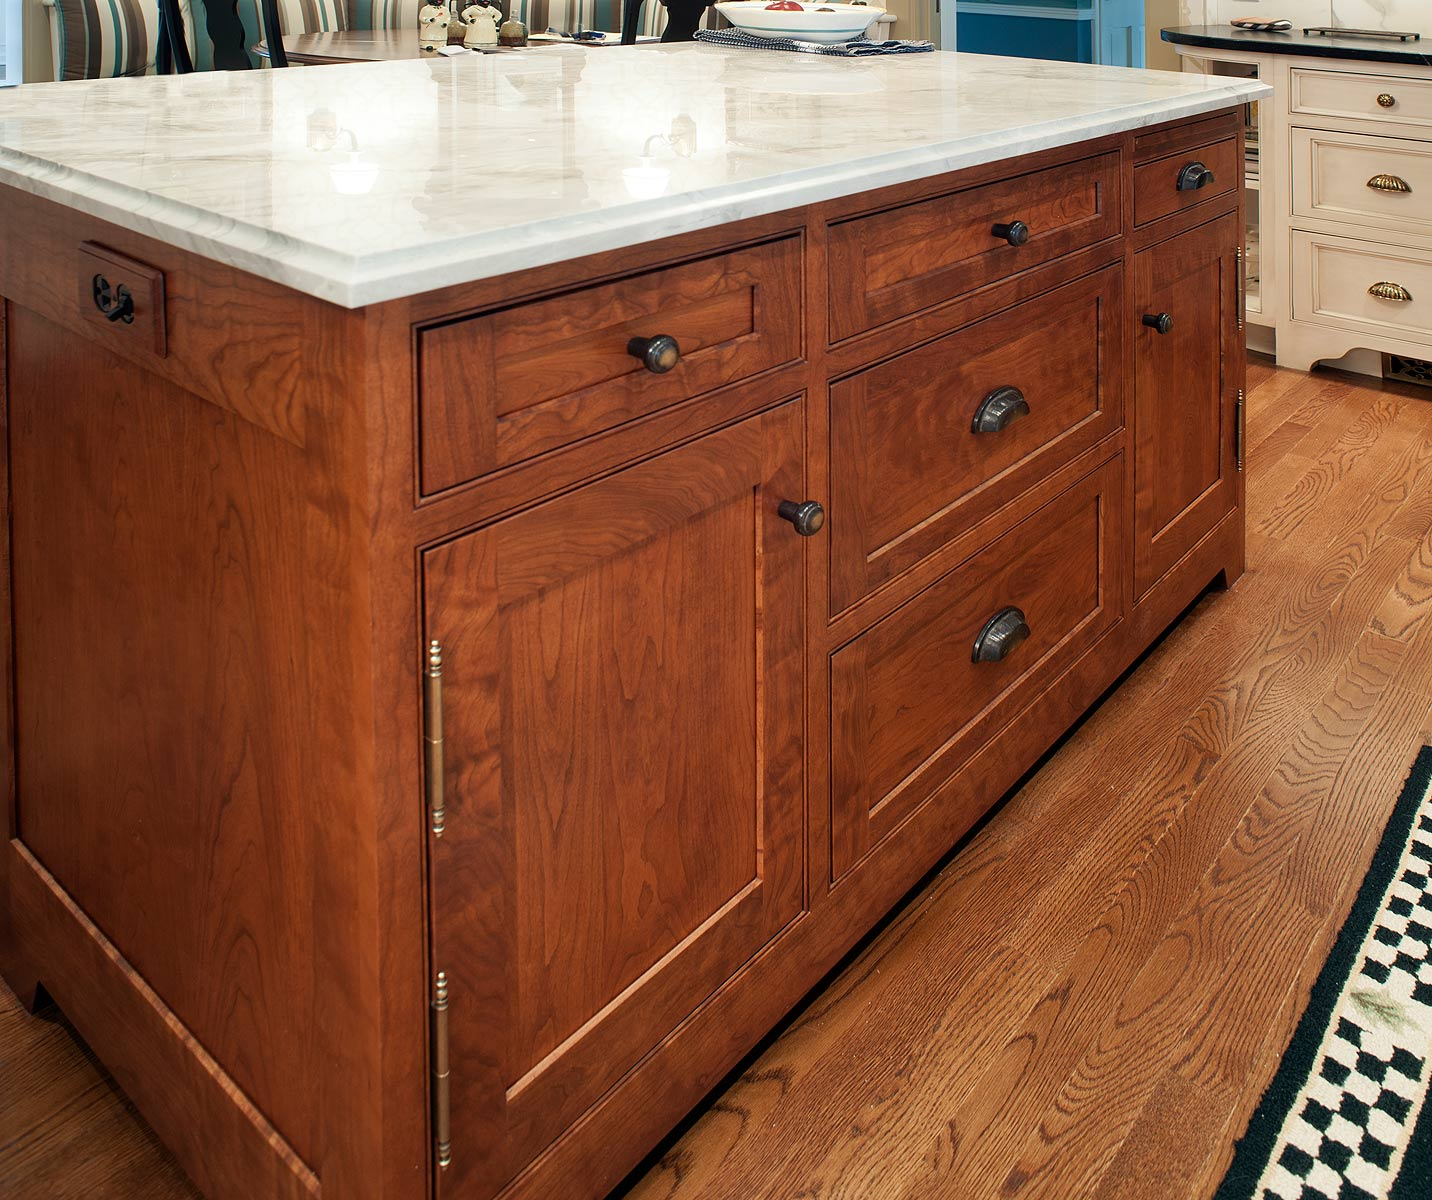 Mullet Cabinet — Nantucket Glazed Kitchen with Curly Cherry Island